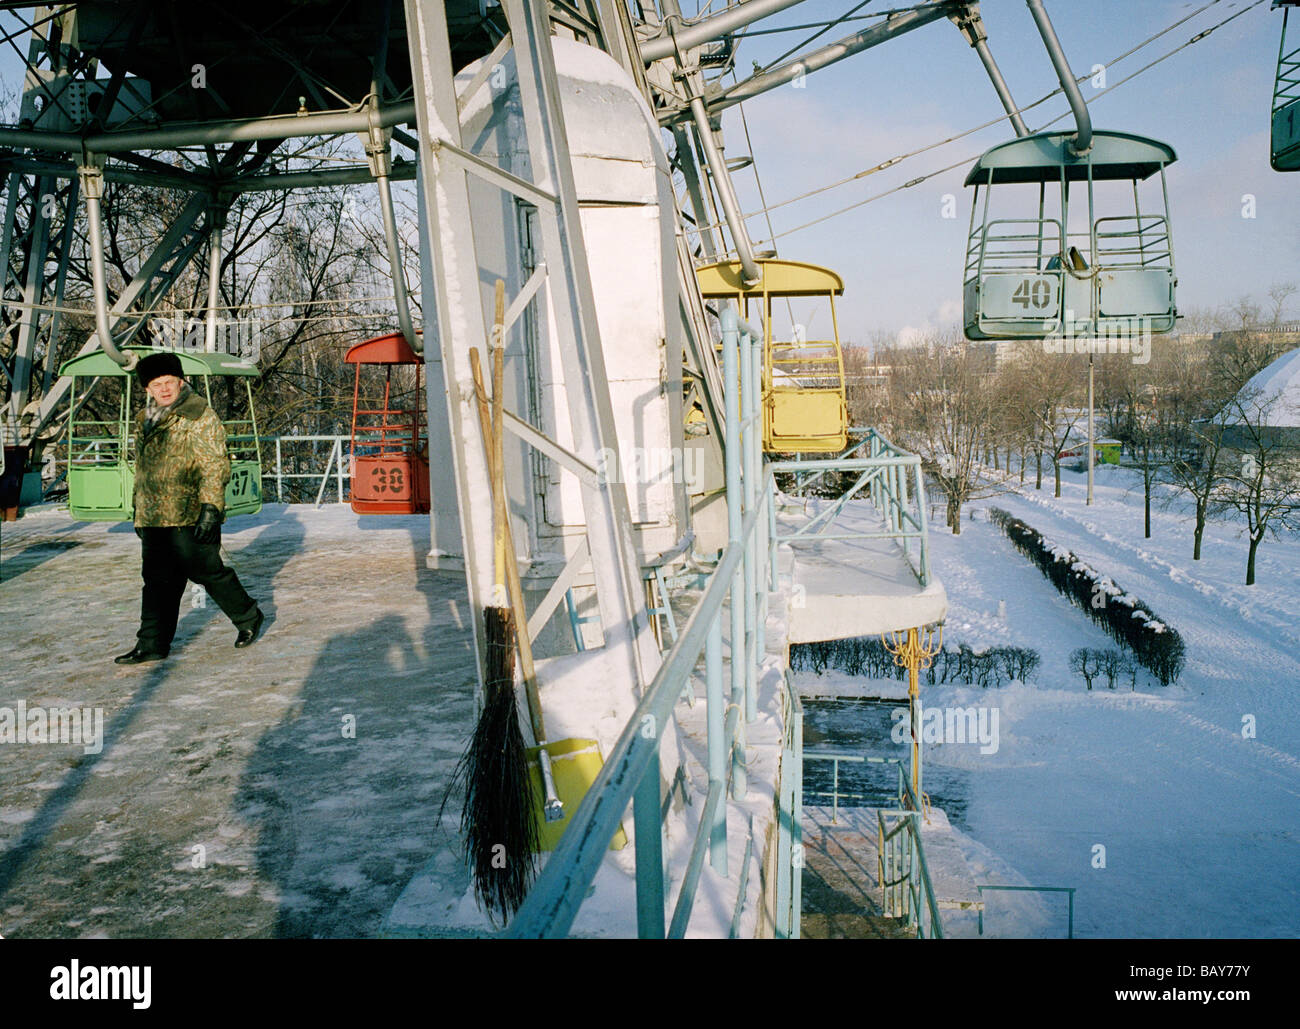 Gorki - a contact zoo in the Moscow region: description, photos and prices